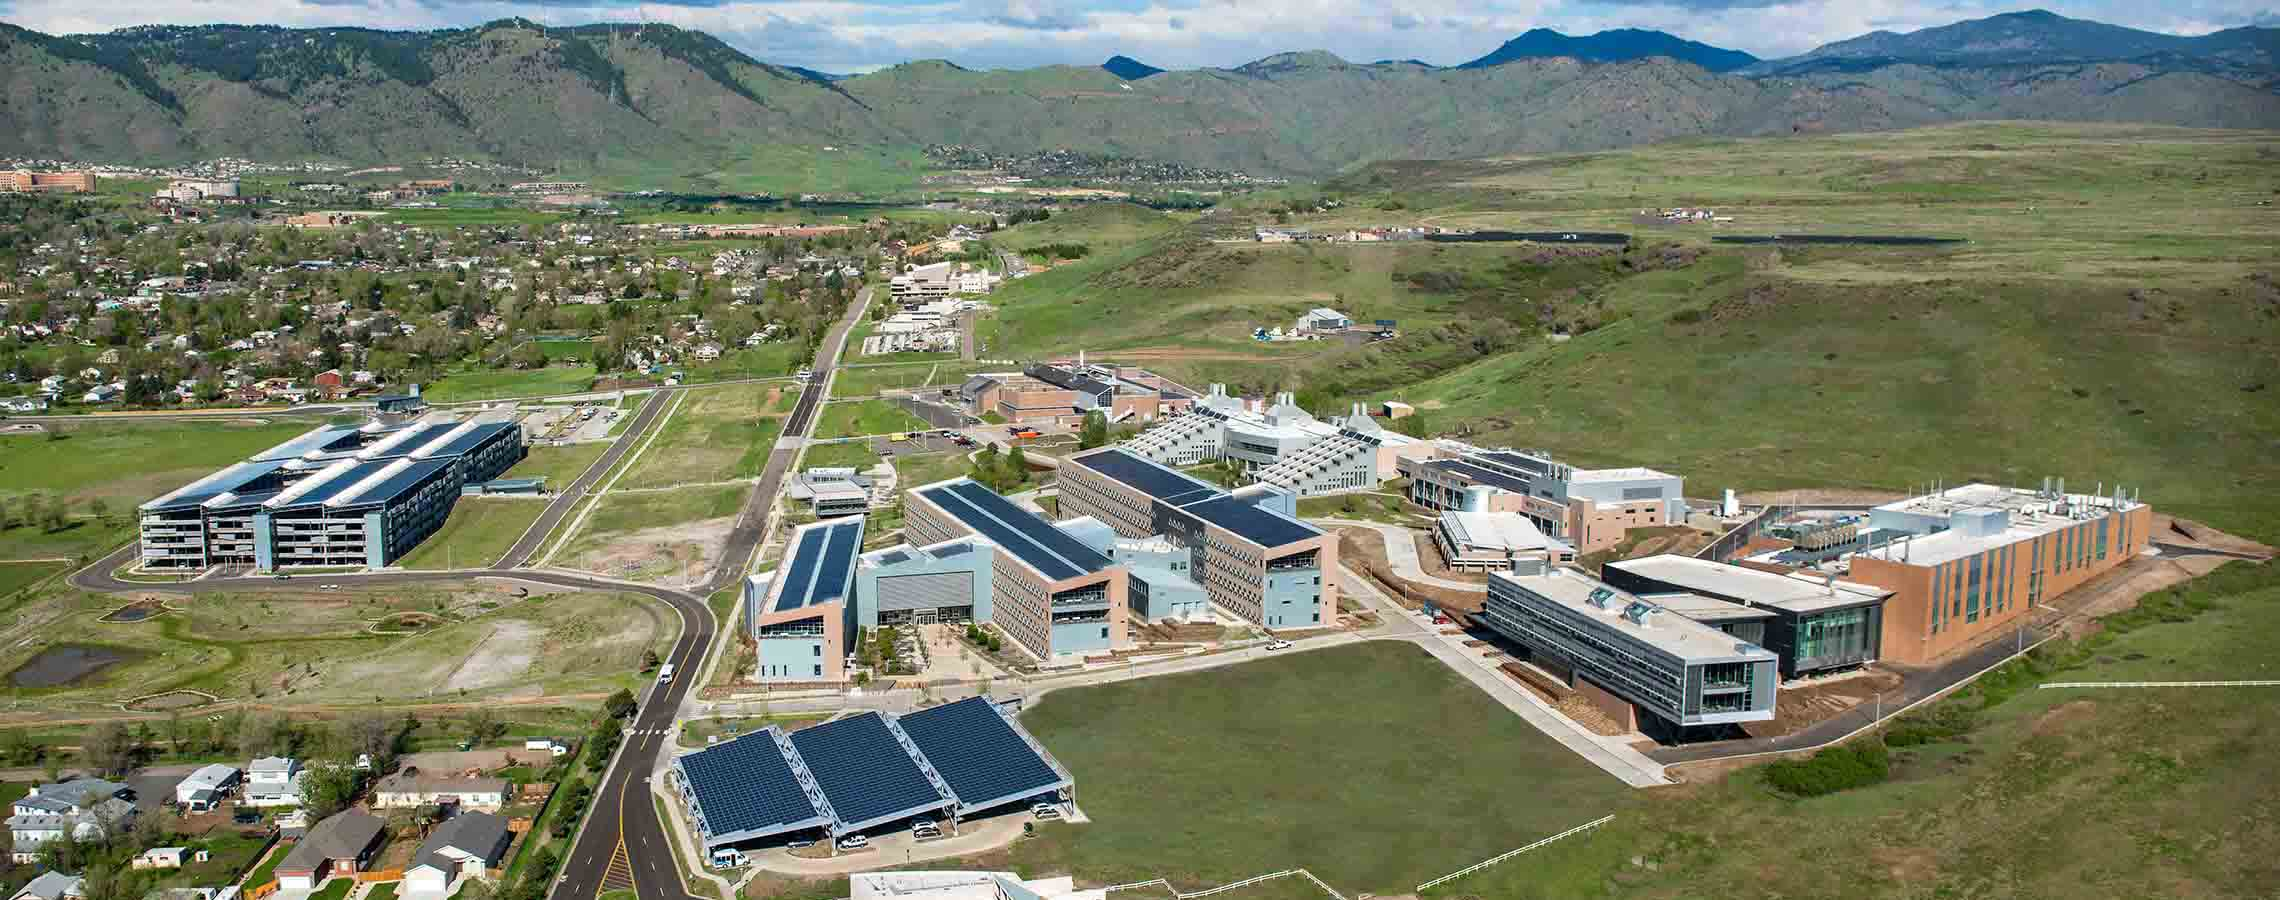 Photo of an aerial view of the NREL South Table Mesa campus buildings with mountains in the background.